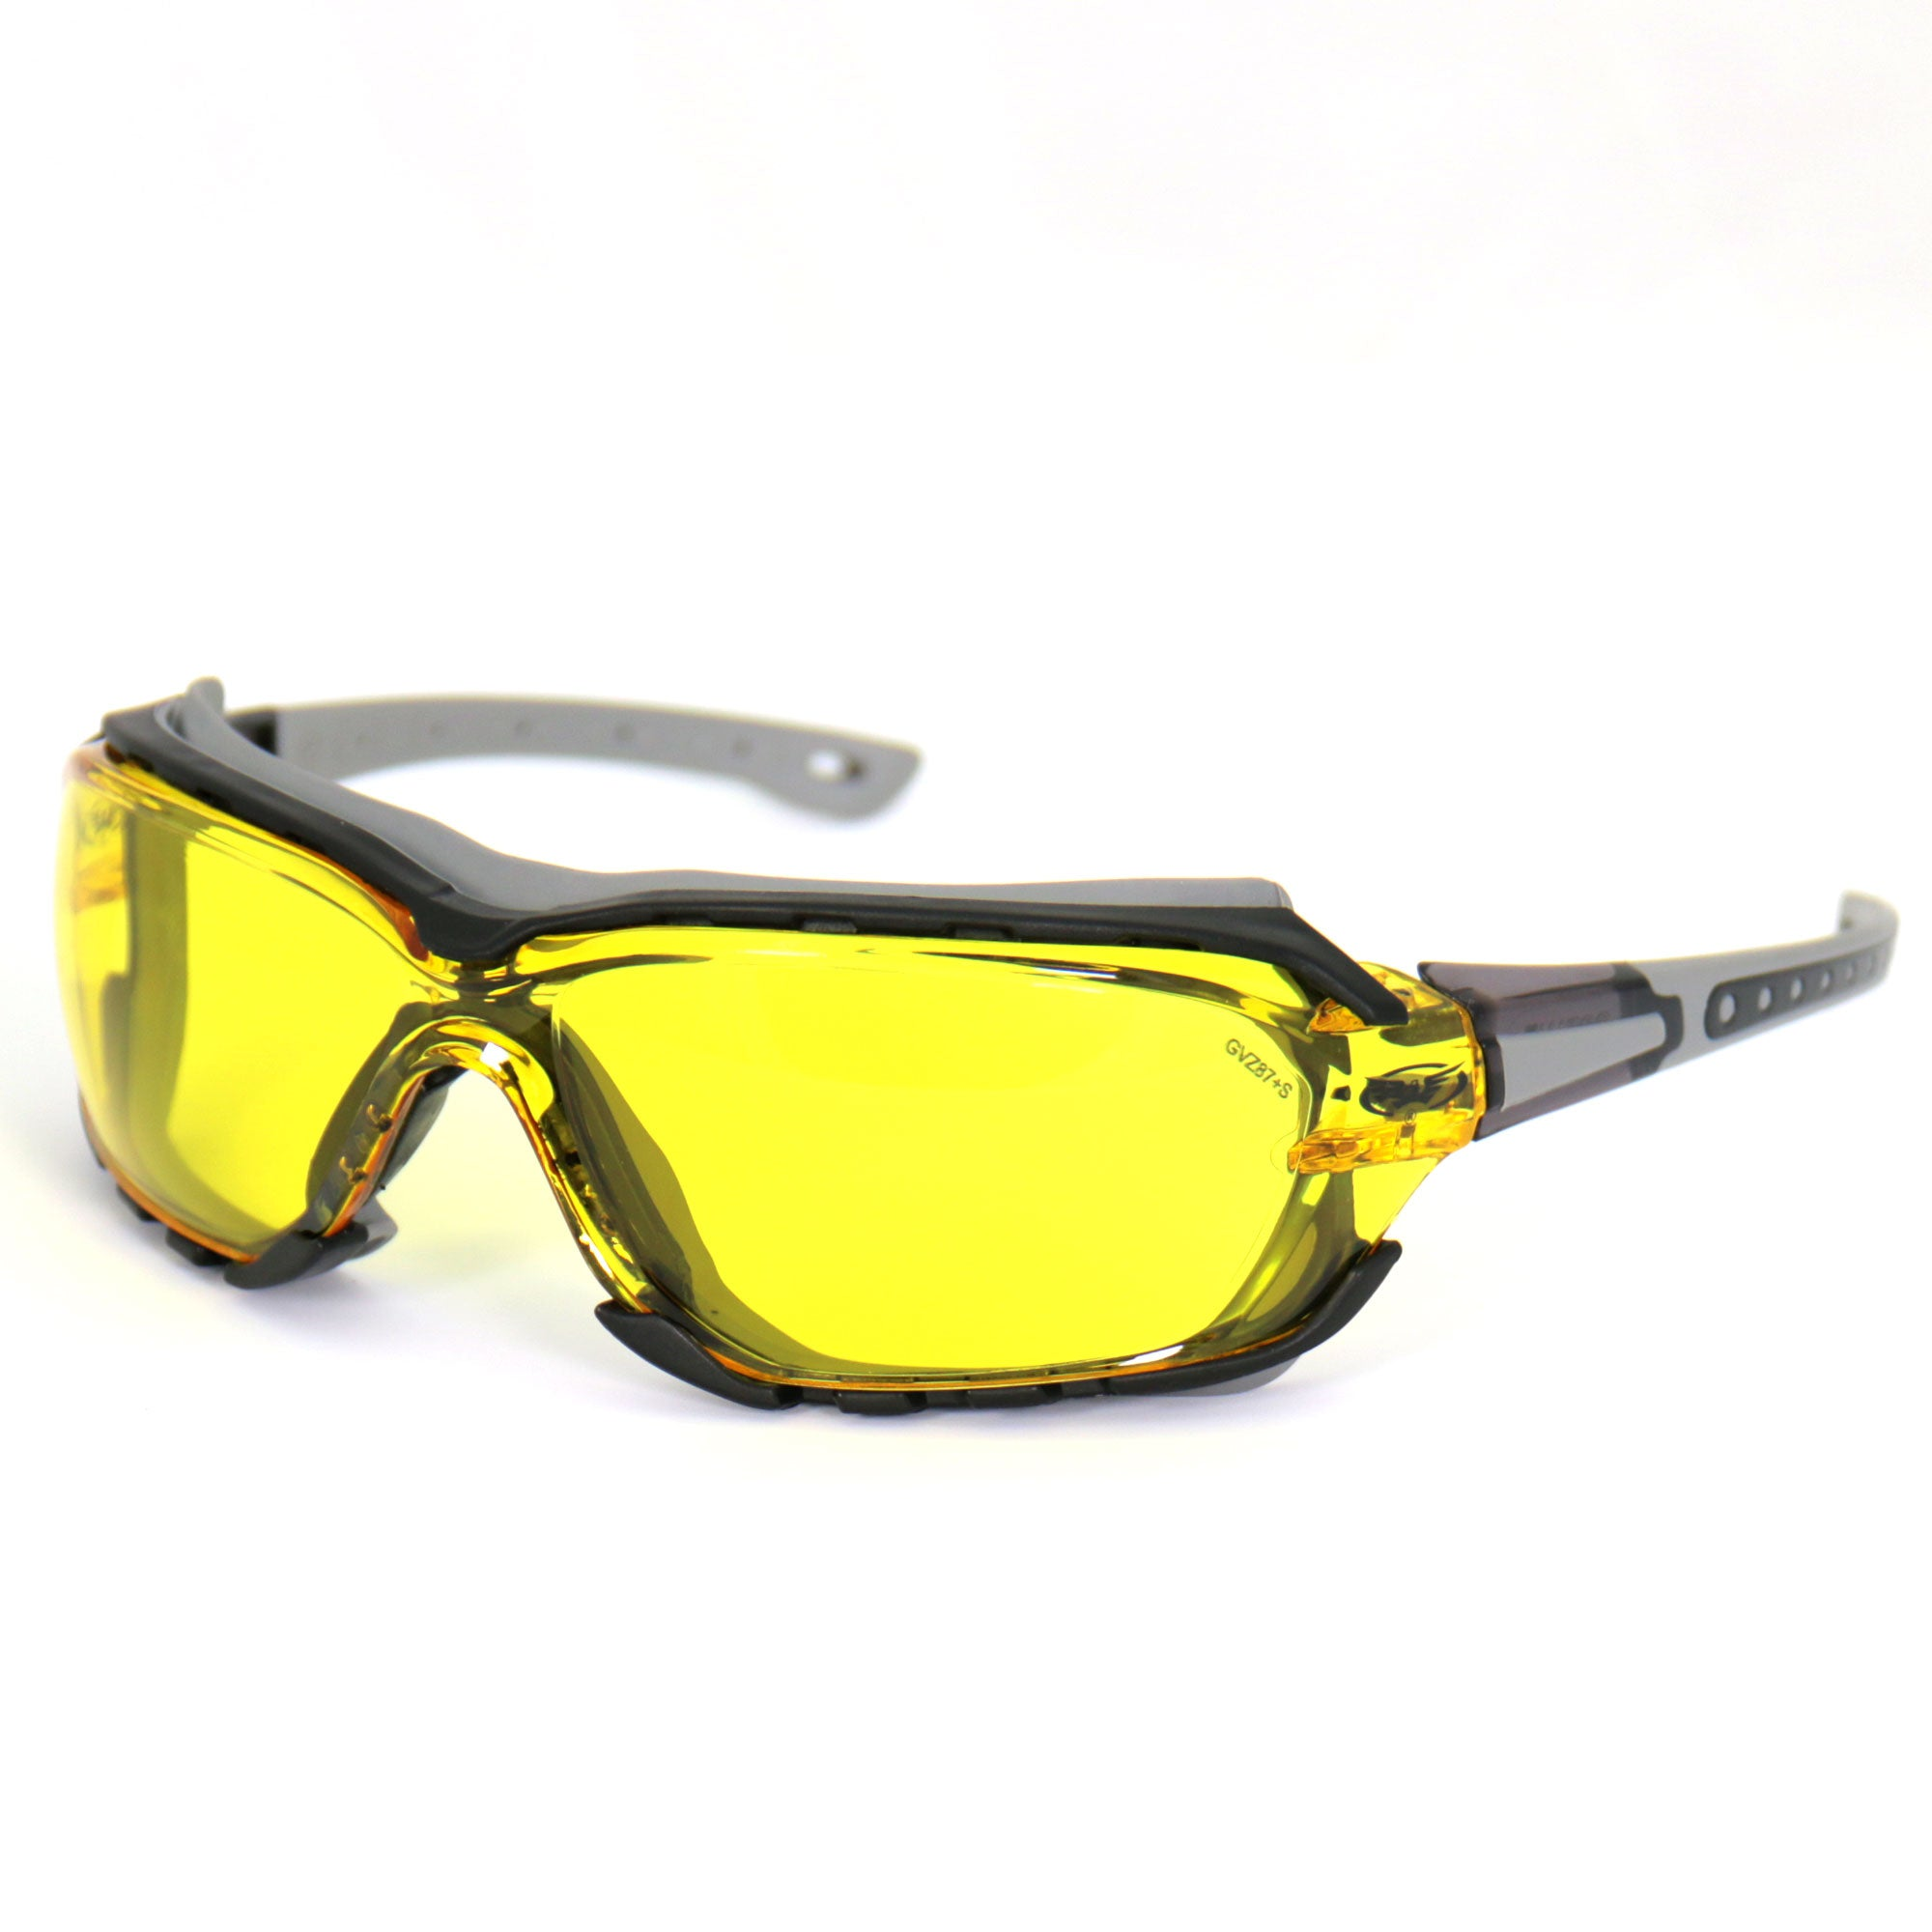 Hot Leathers Iceman Motorcycle Anti Fog Safety Sunglasses